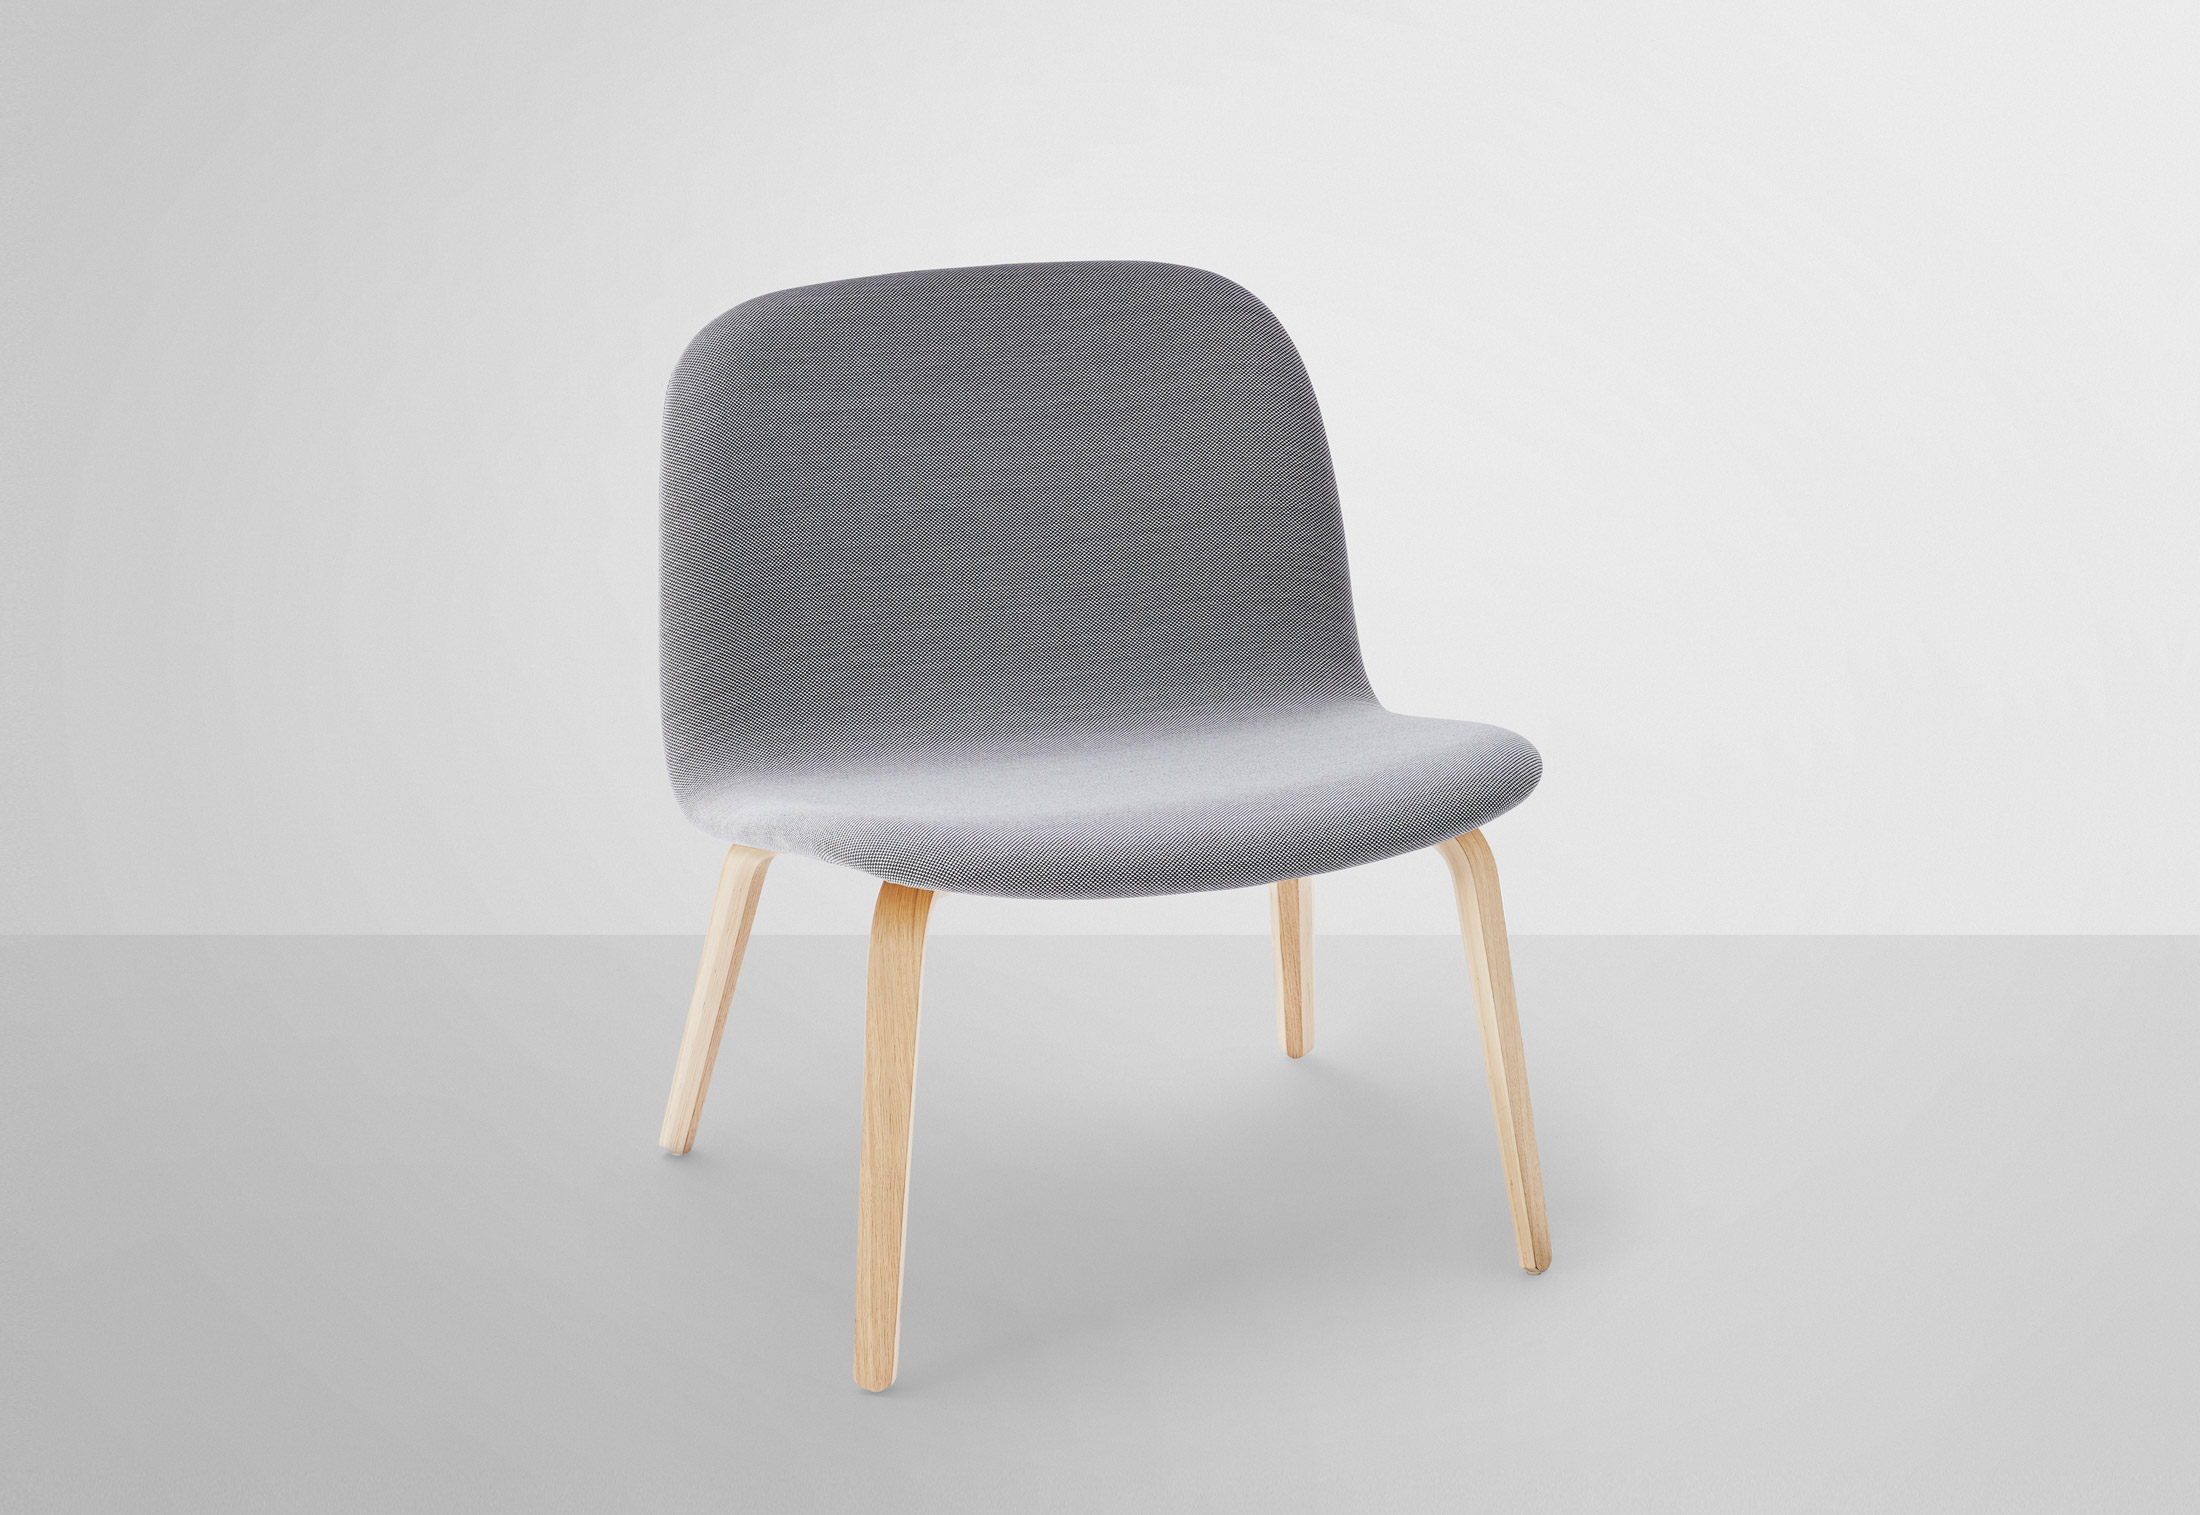 Astounding Visu Lounge Chair Upholstered By Muuto Stylepark Ocoug Best Dining Table And Chair Ideas Images Ocougorg